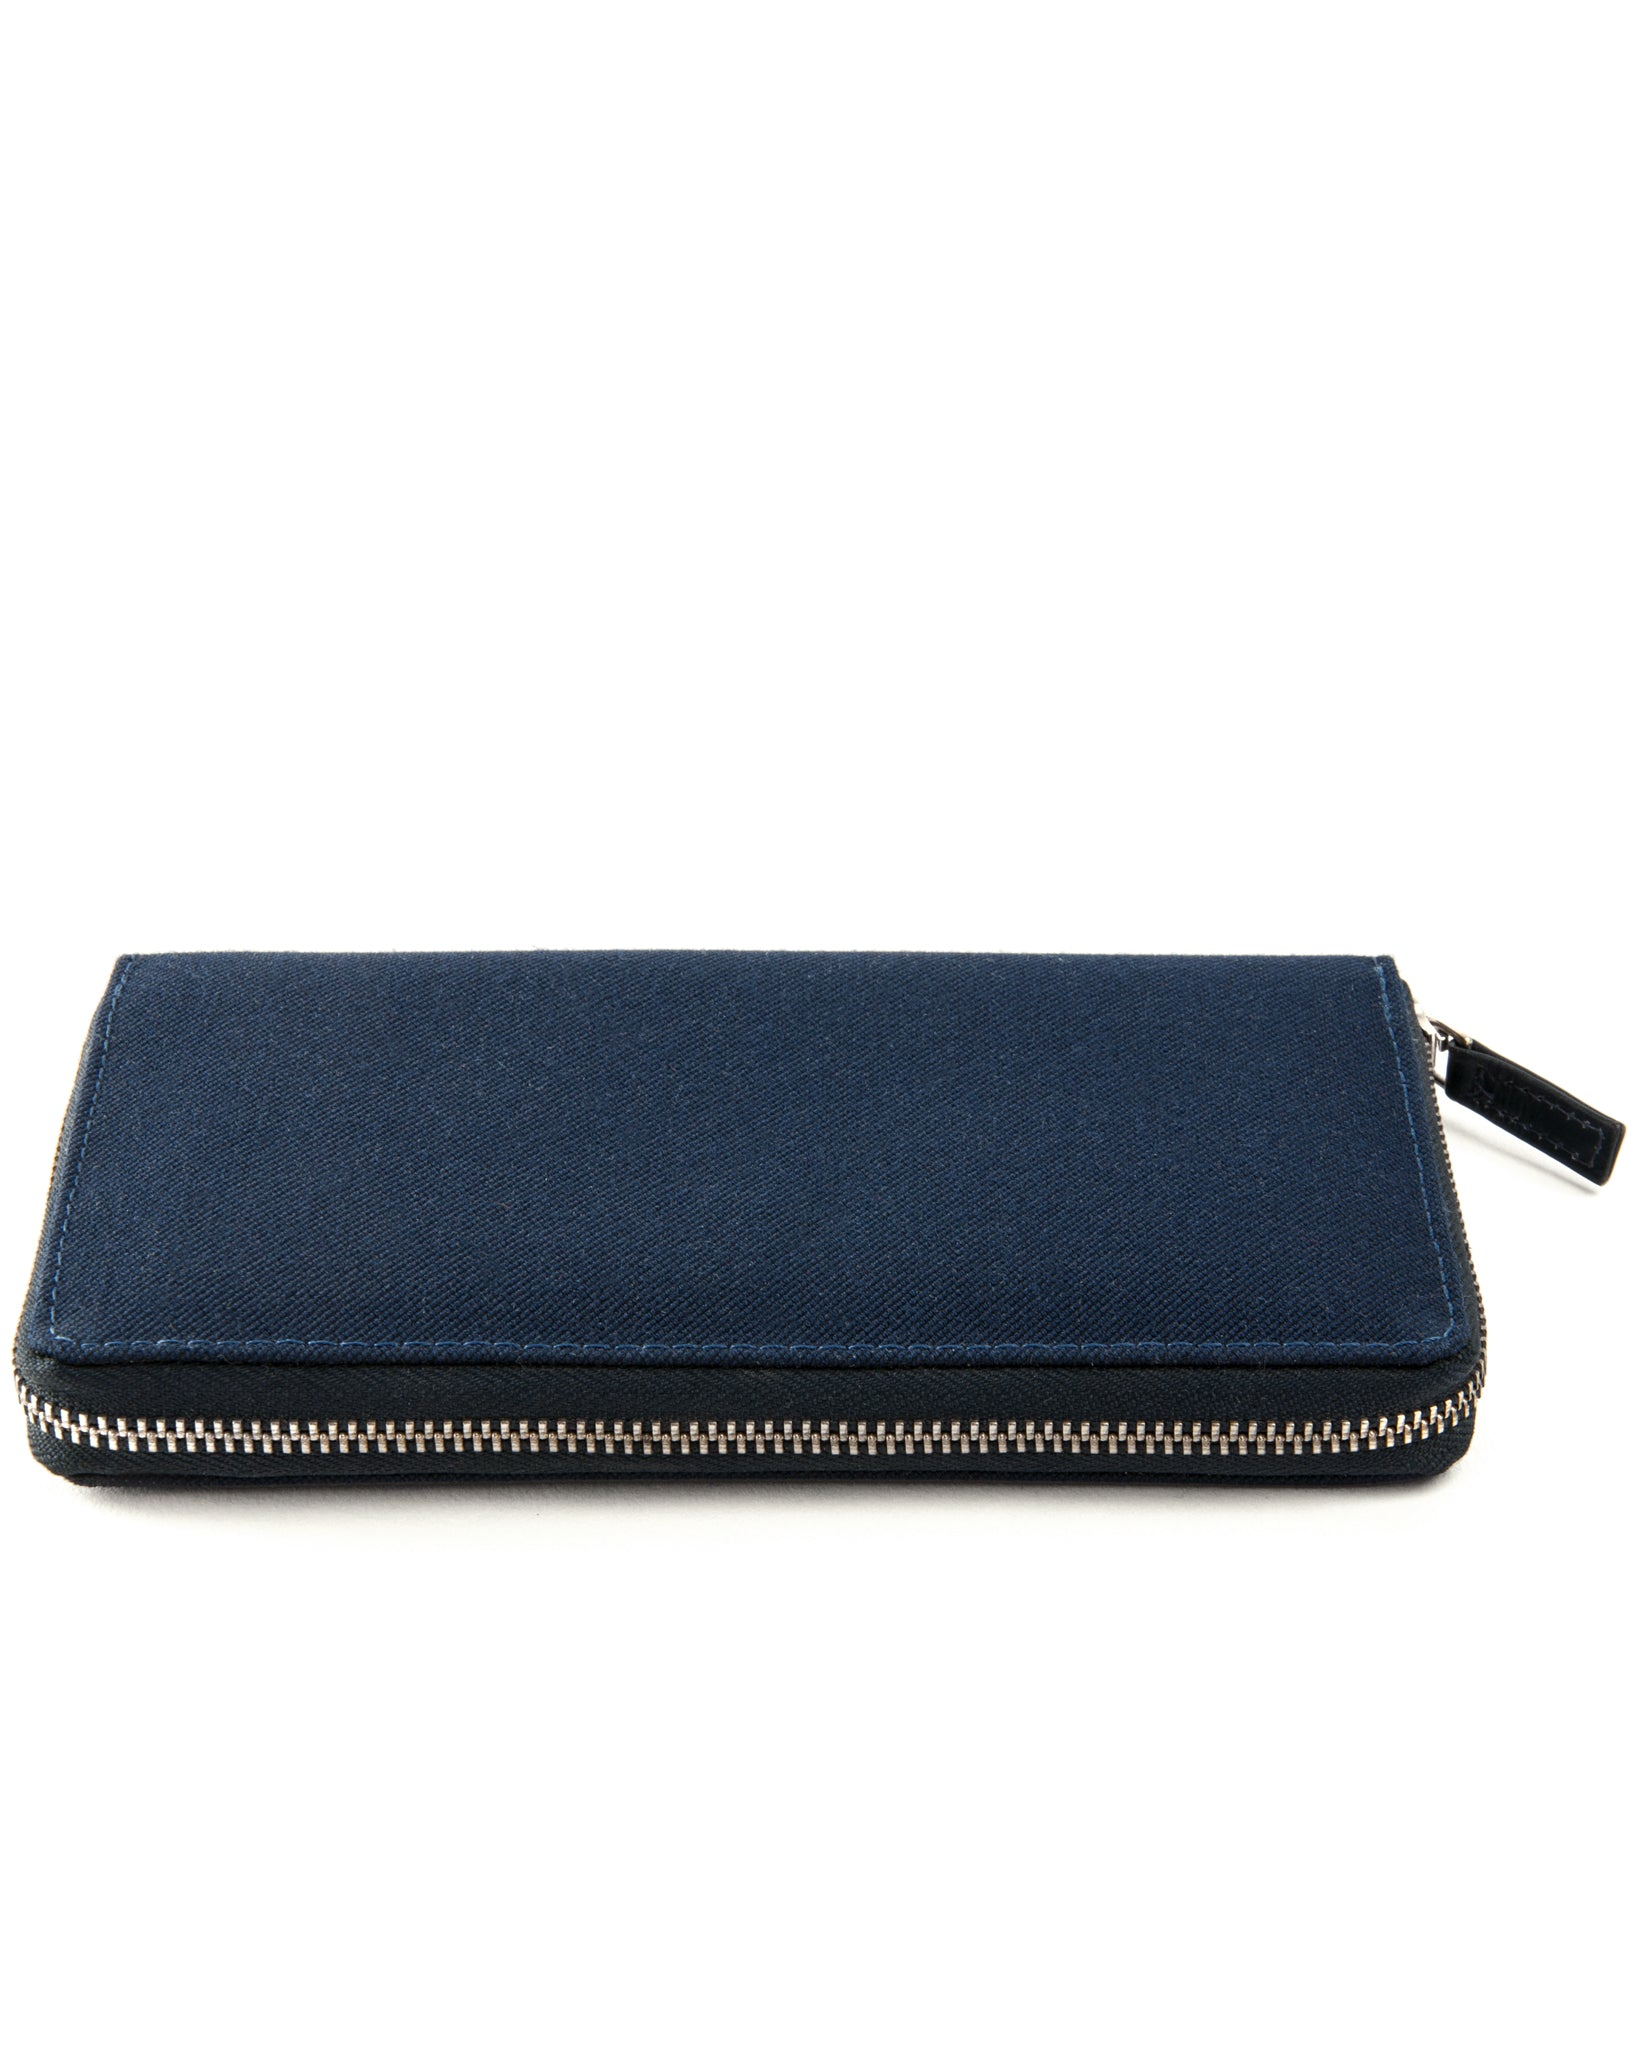 dothebag accessories wallet zip L